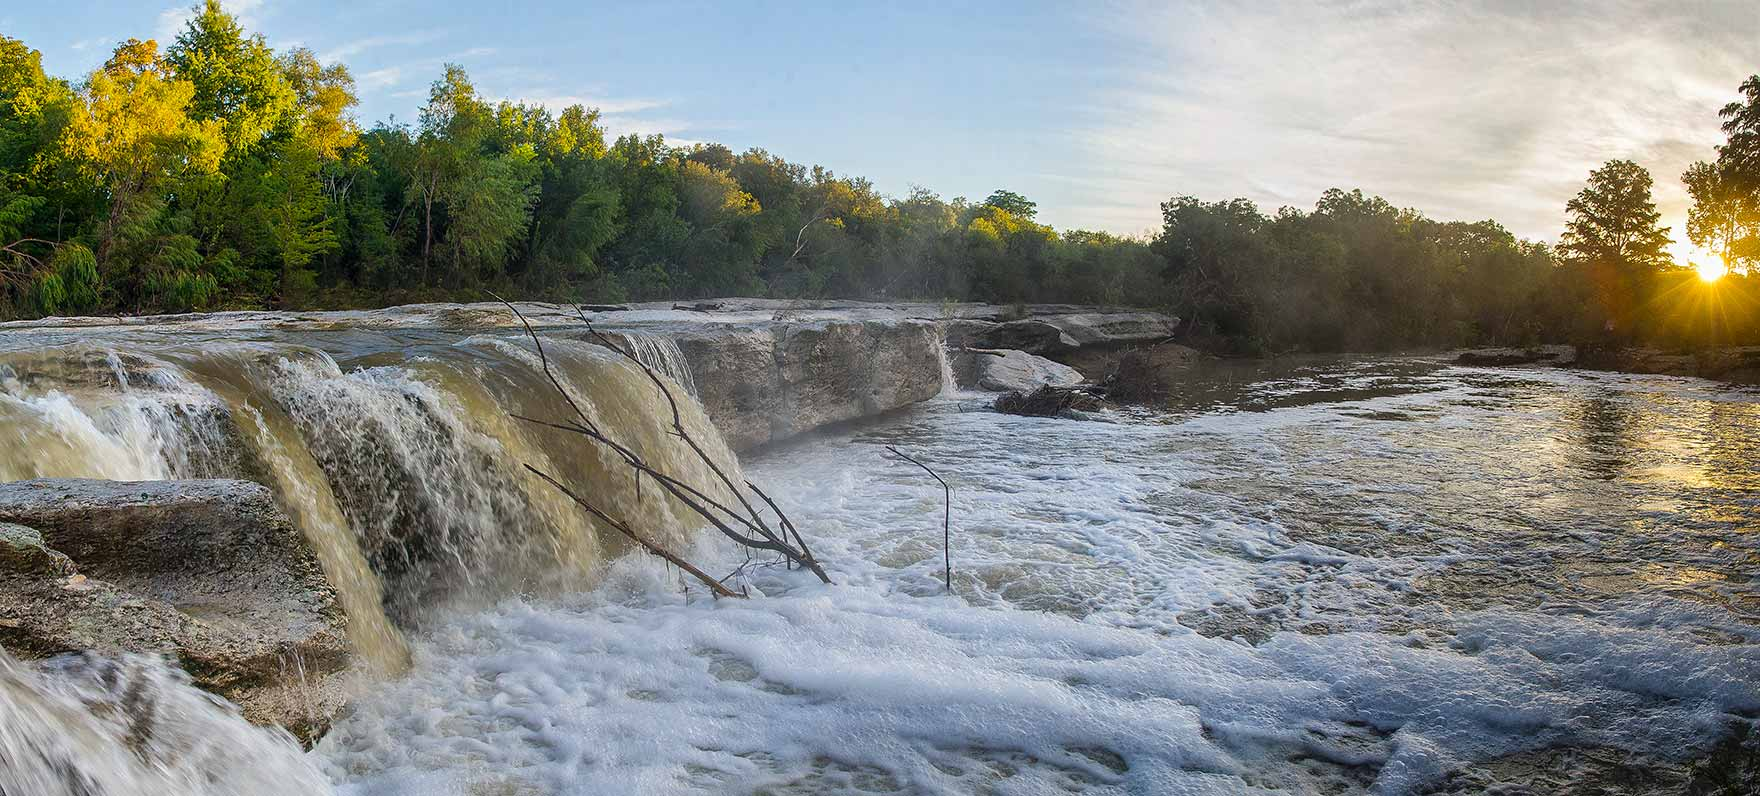 lower-mckinney-falls.jpg